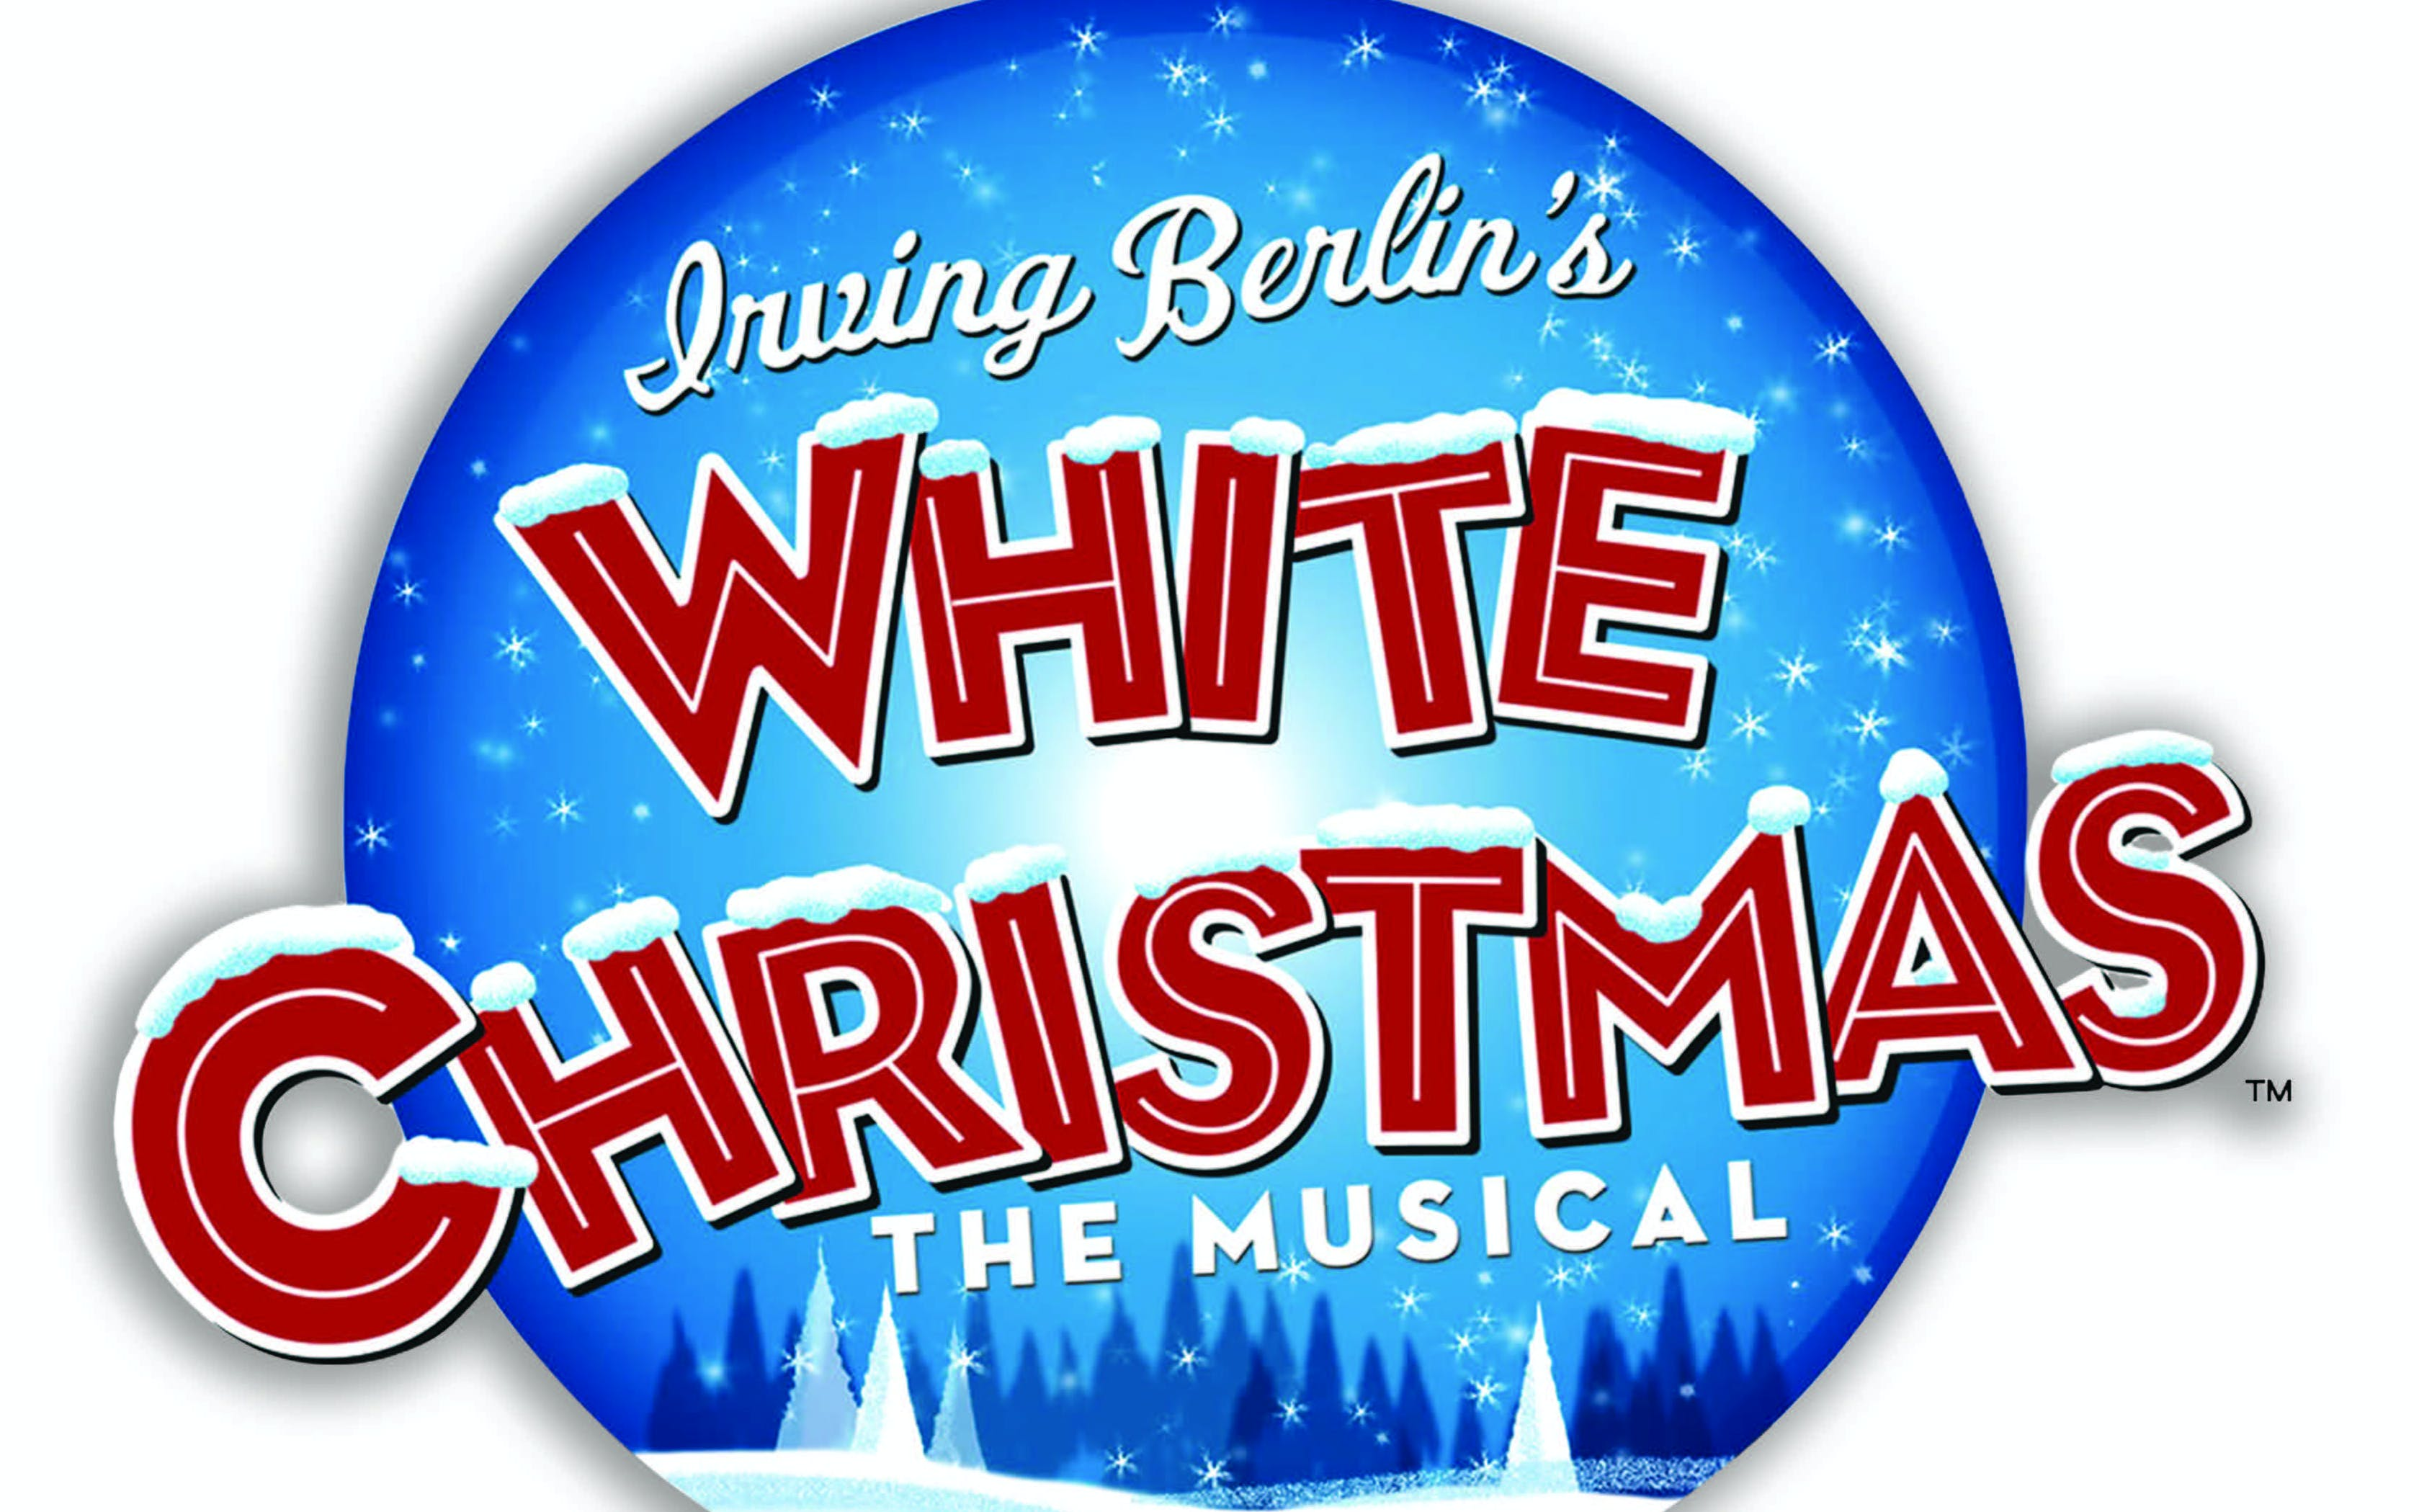 irving berlin's white christmas -3